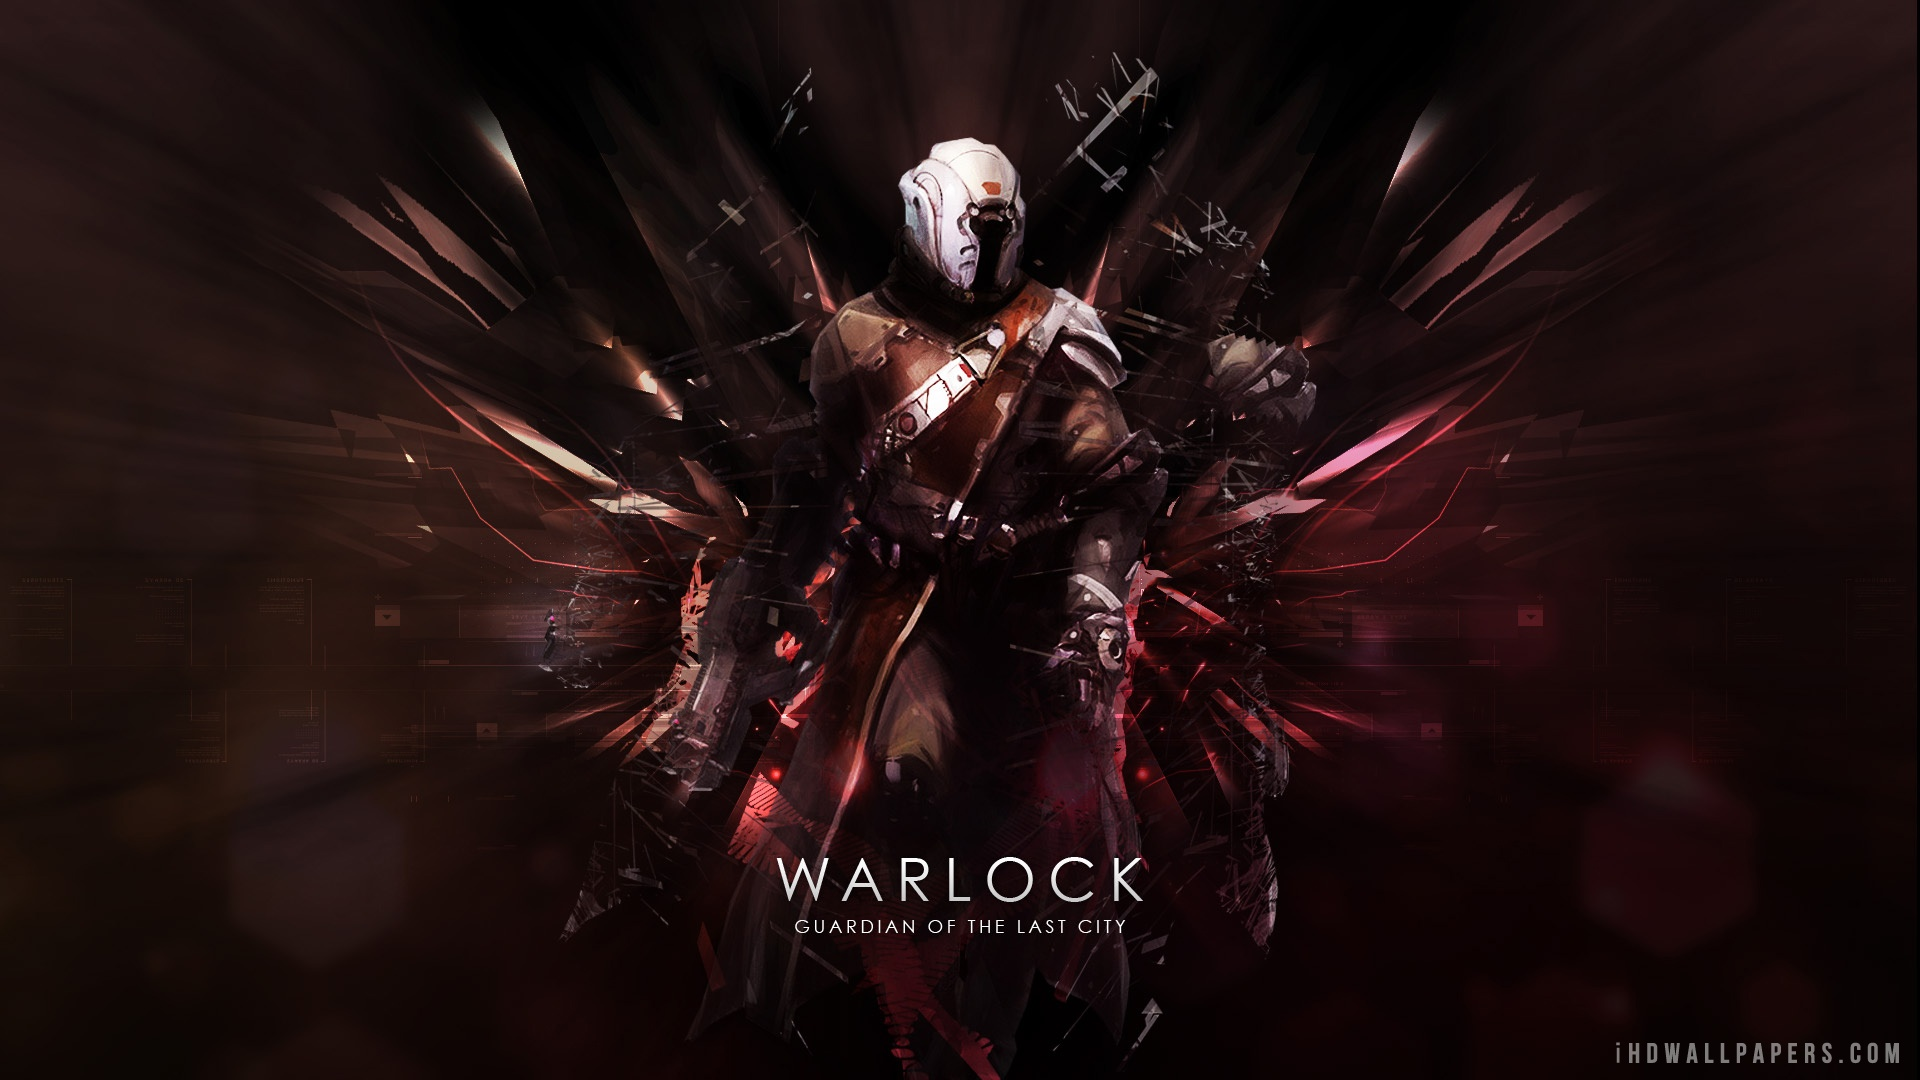 Destiny Warlock HD Wallpaper   iHD Wallpapers 1920x1080